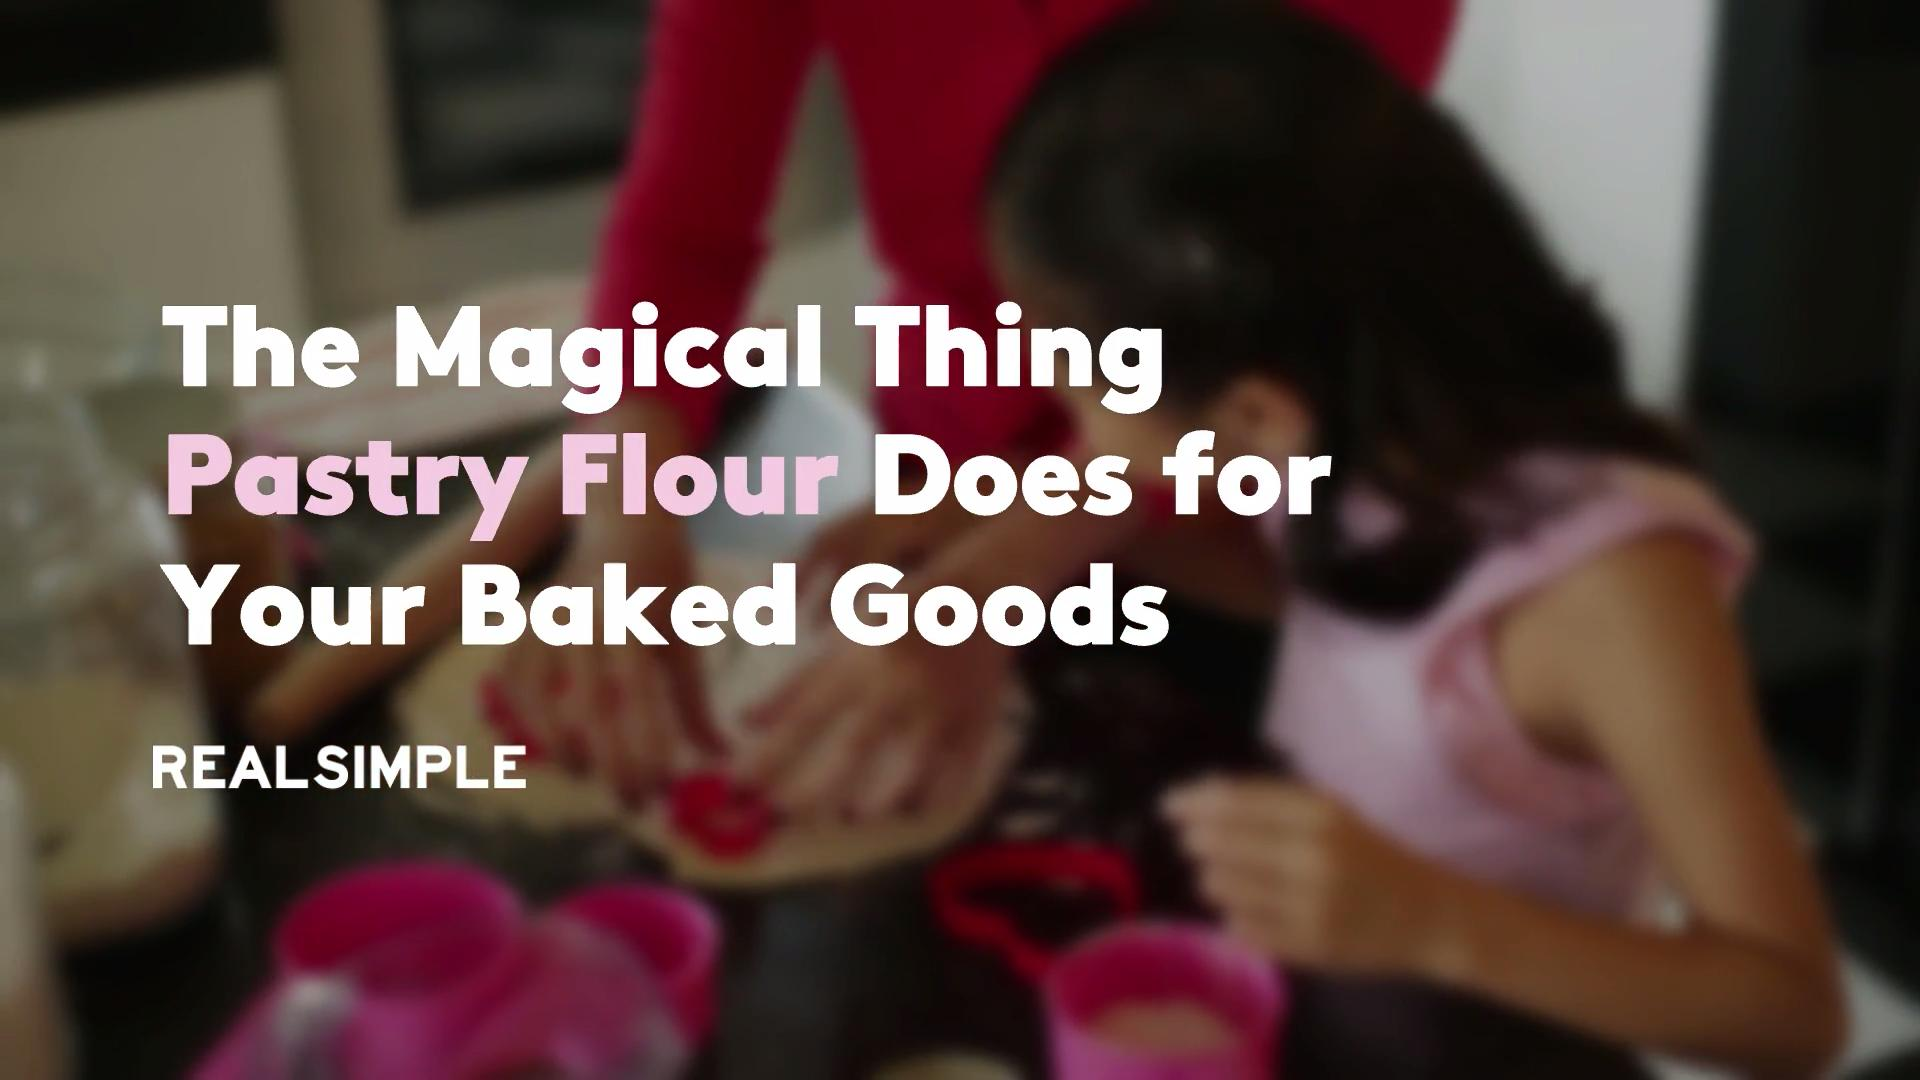 The Magical Thing Pastry Flour Does for Your Baked Goods